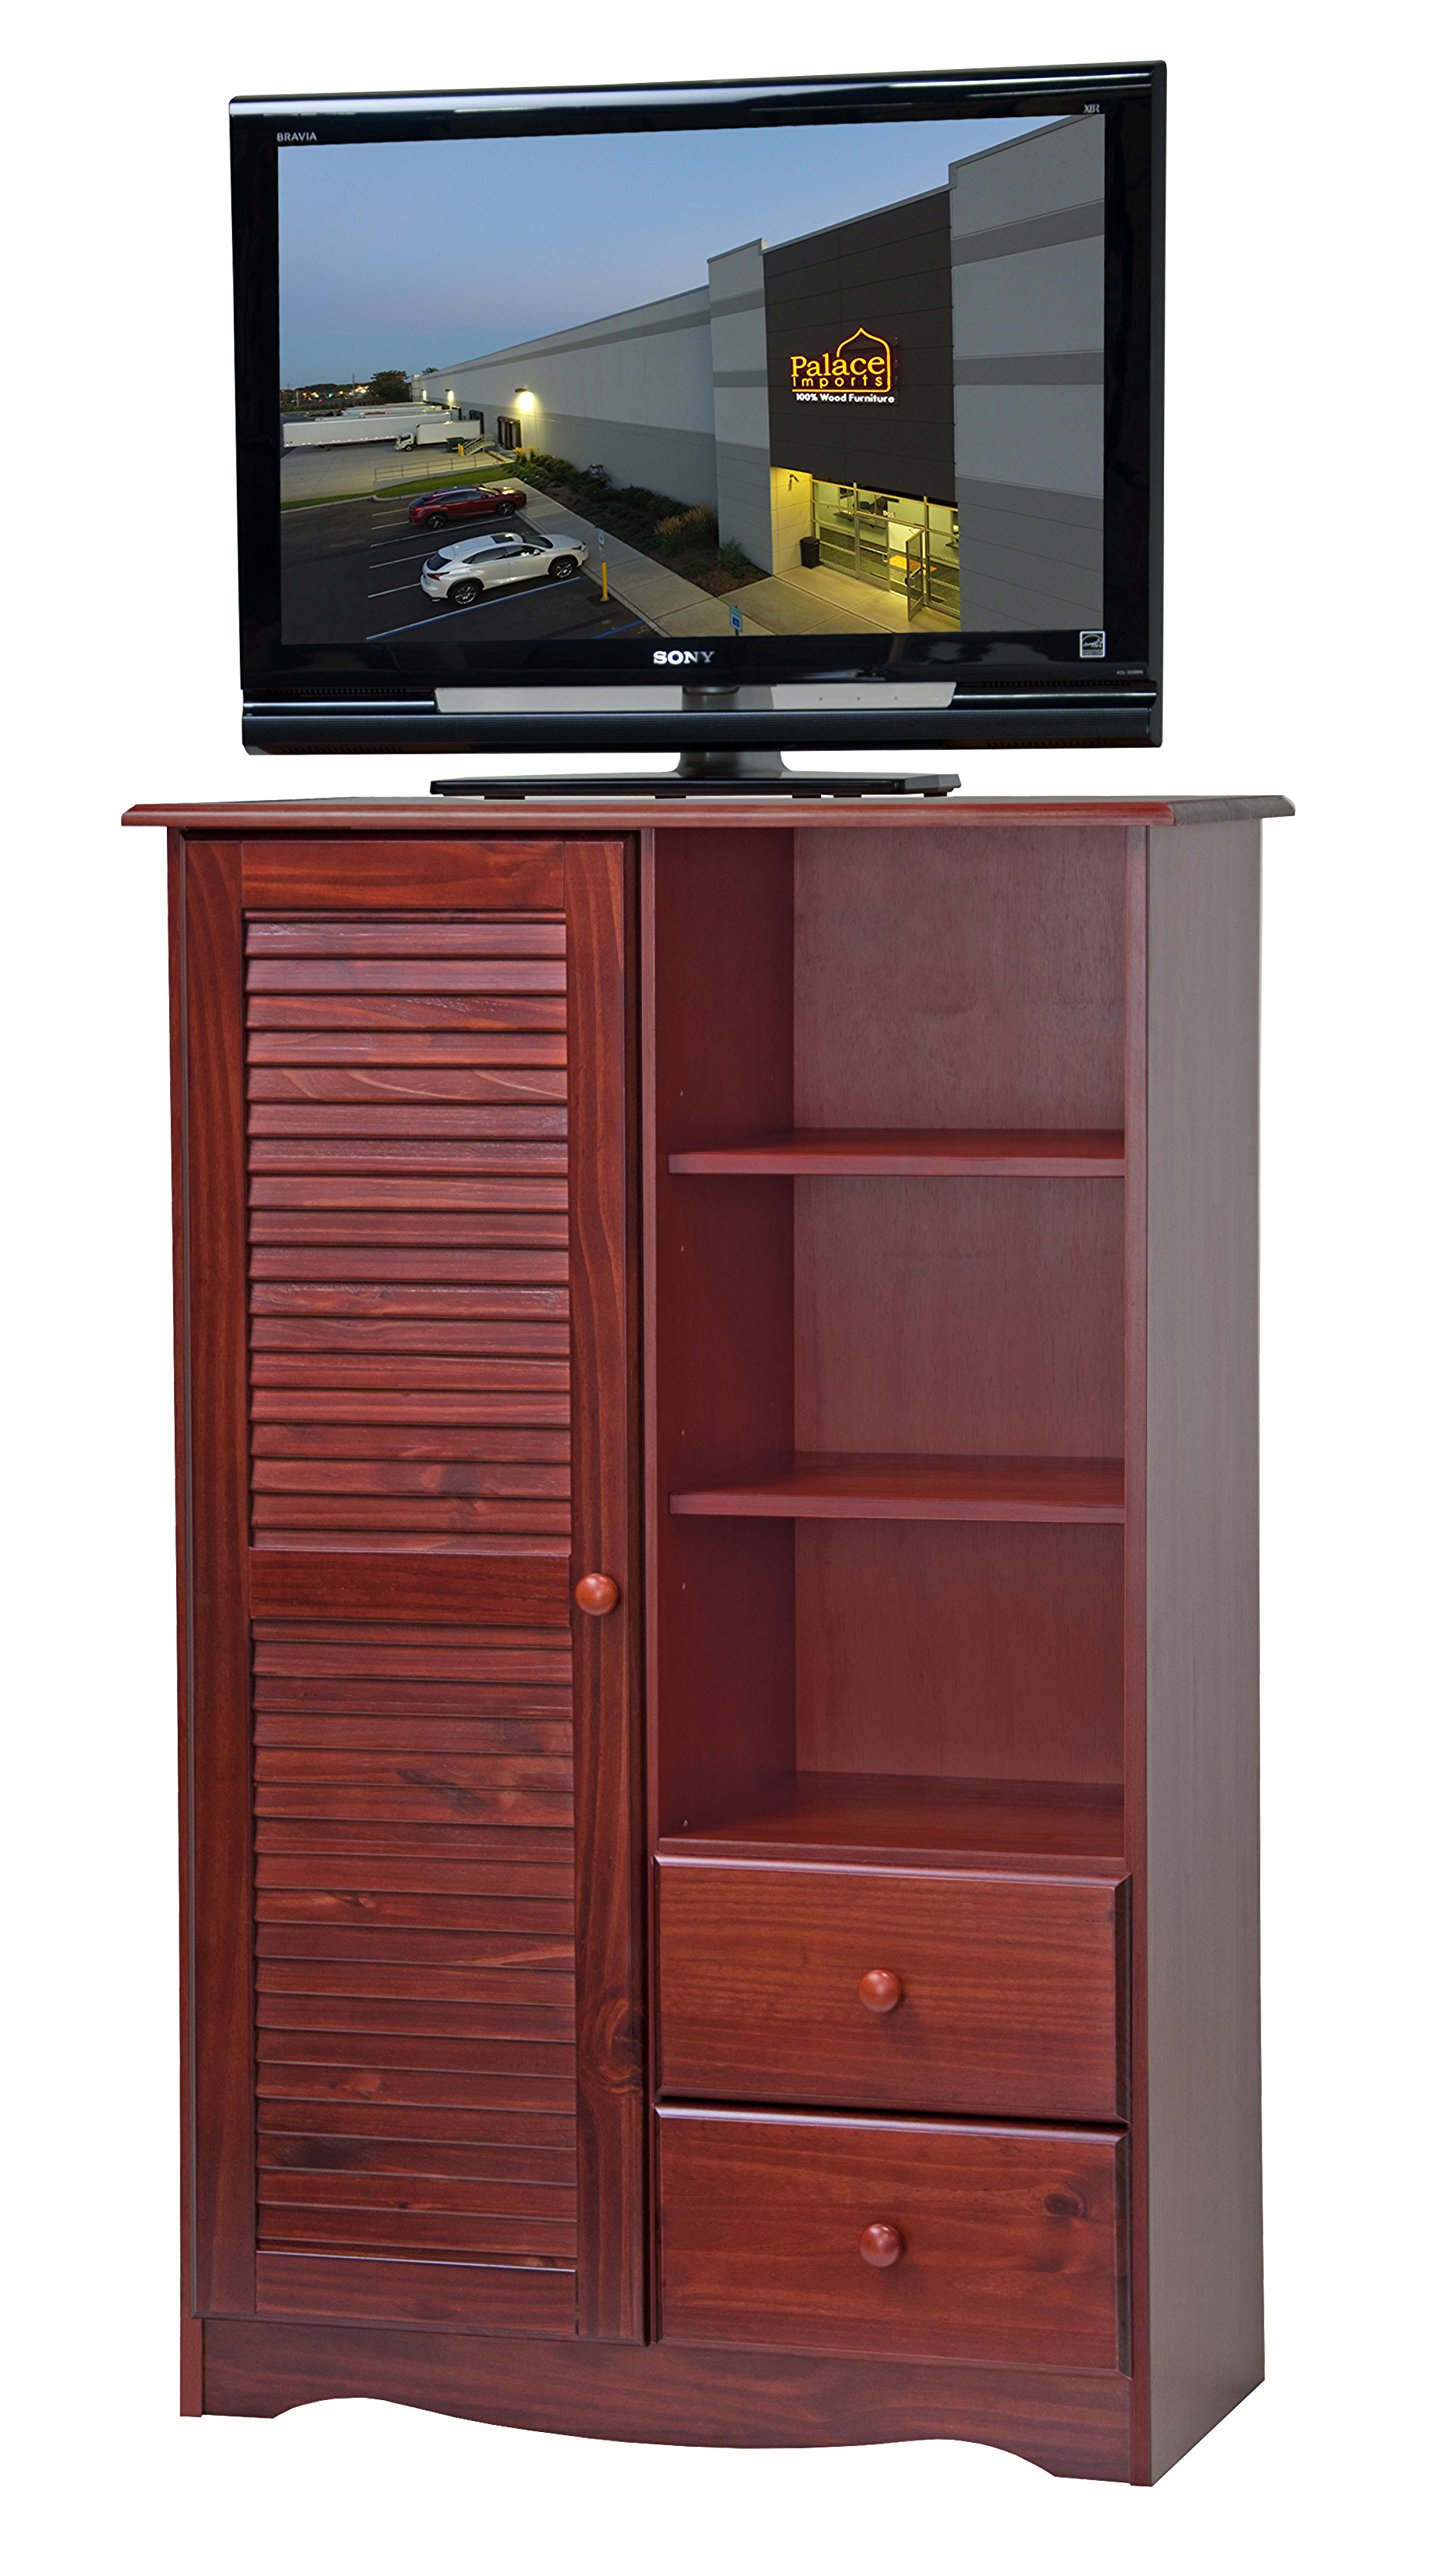 100% Solid Wood Door Chest by Palace Imports, Mahogany Color, 35'' W x 53'' H x 17'' D, 5 Shelves Included. Requires Assembly.